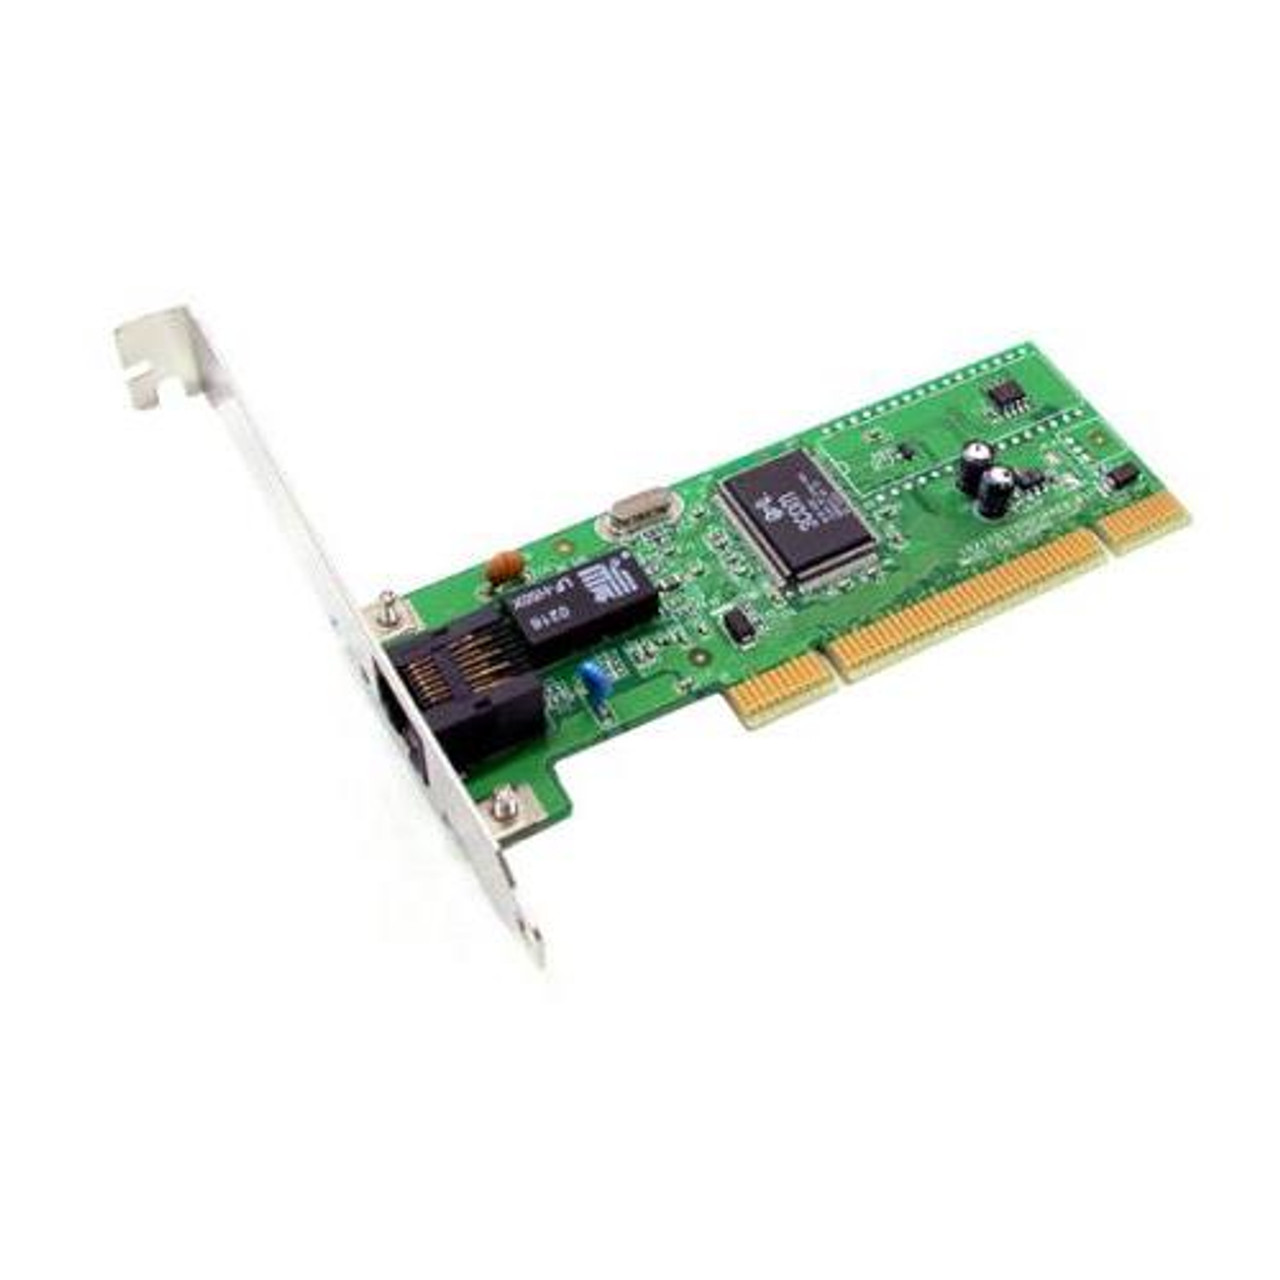 3COM 3C595-TX ETHERLINK III PCI DRIVER FOR WINDOWS MAC